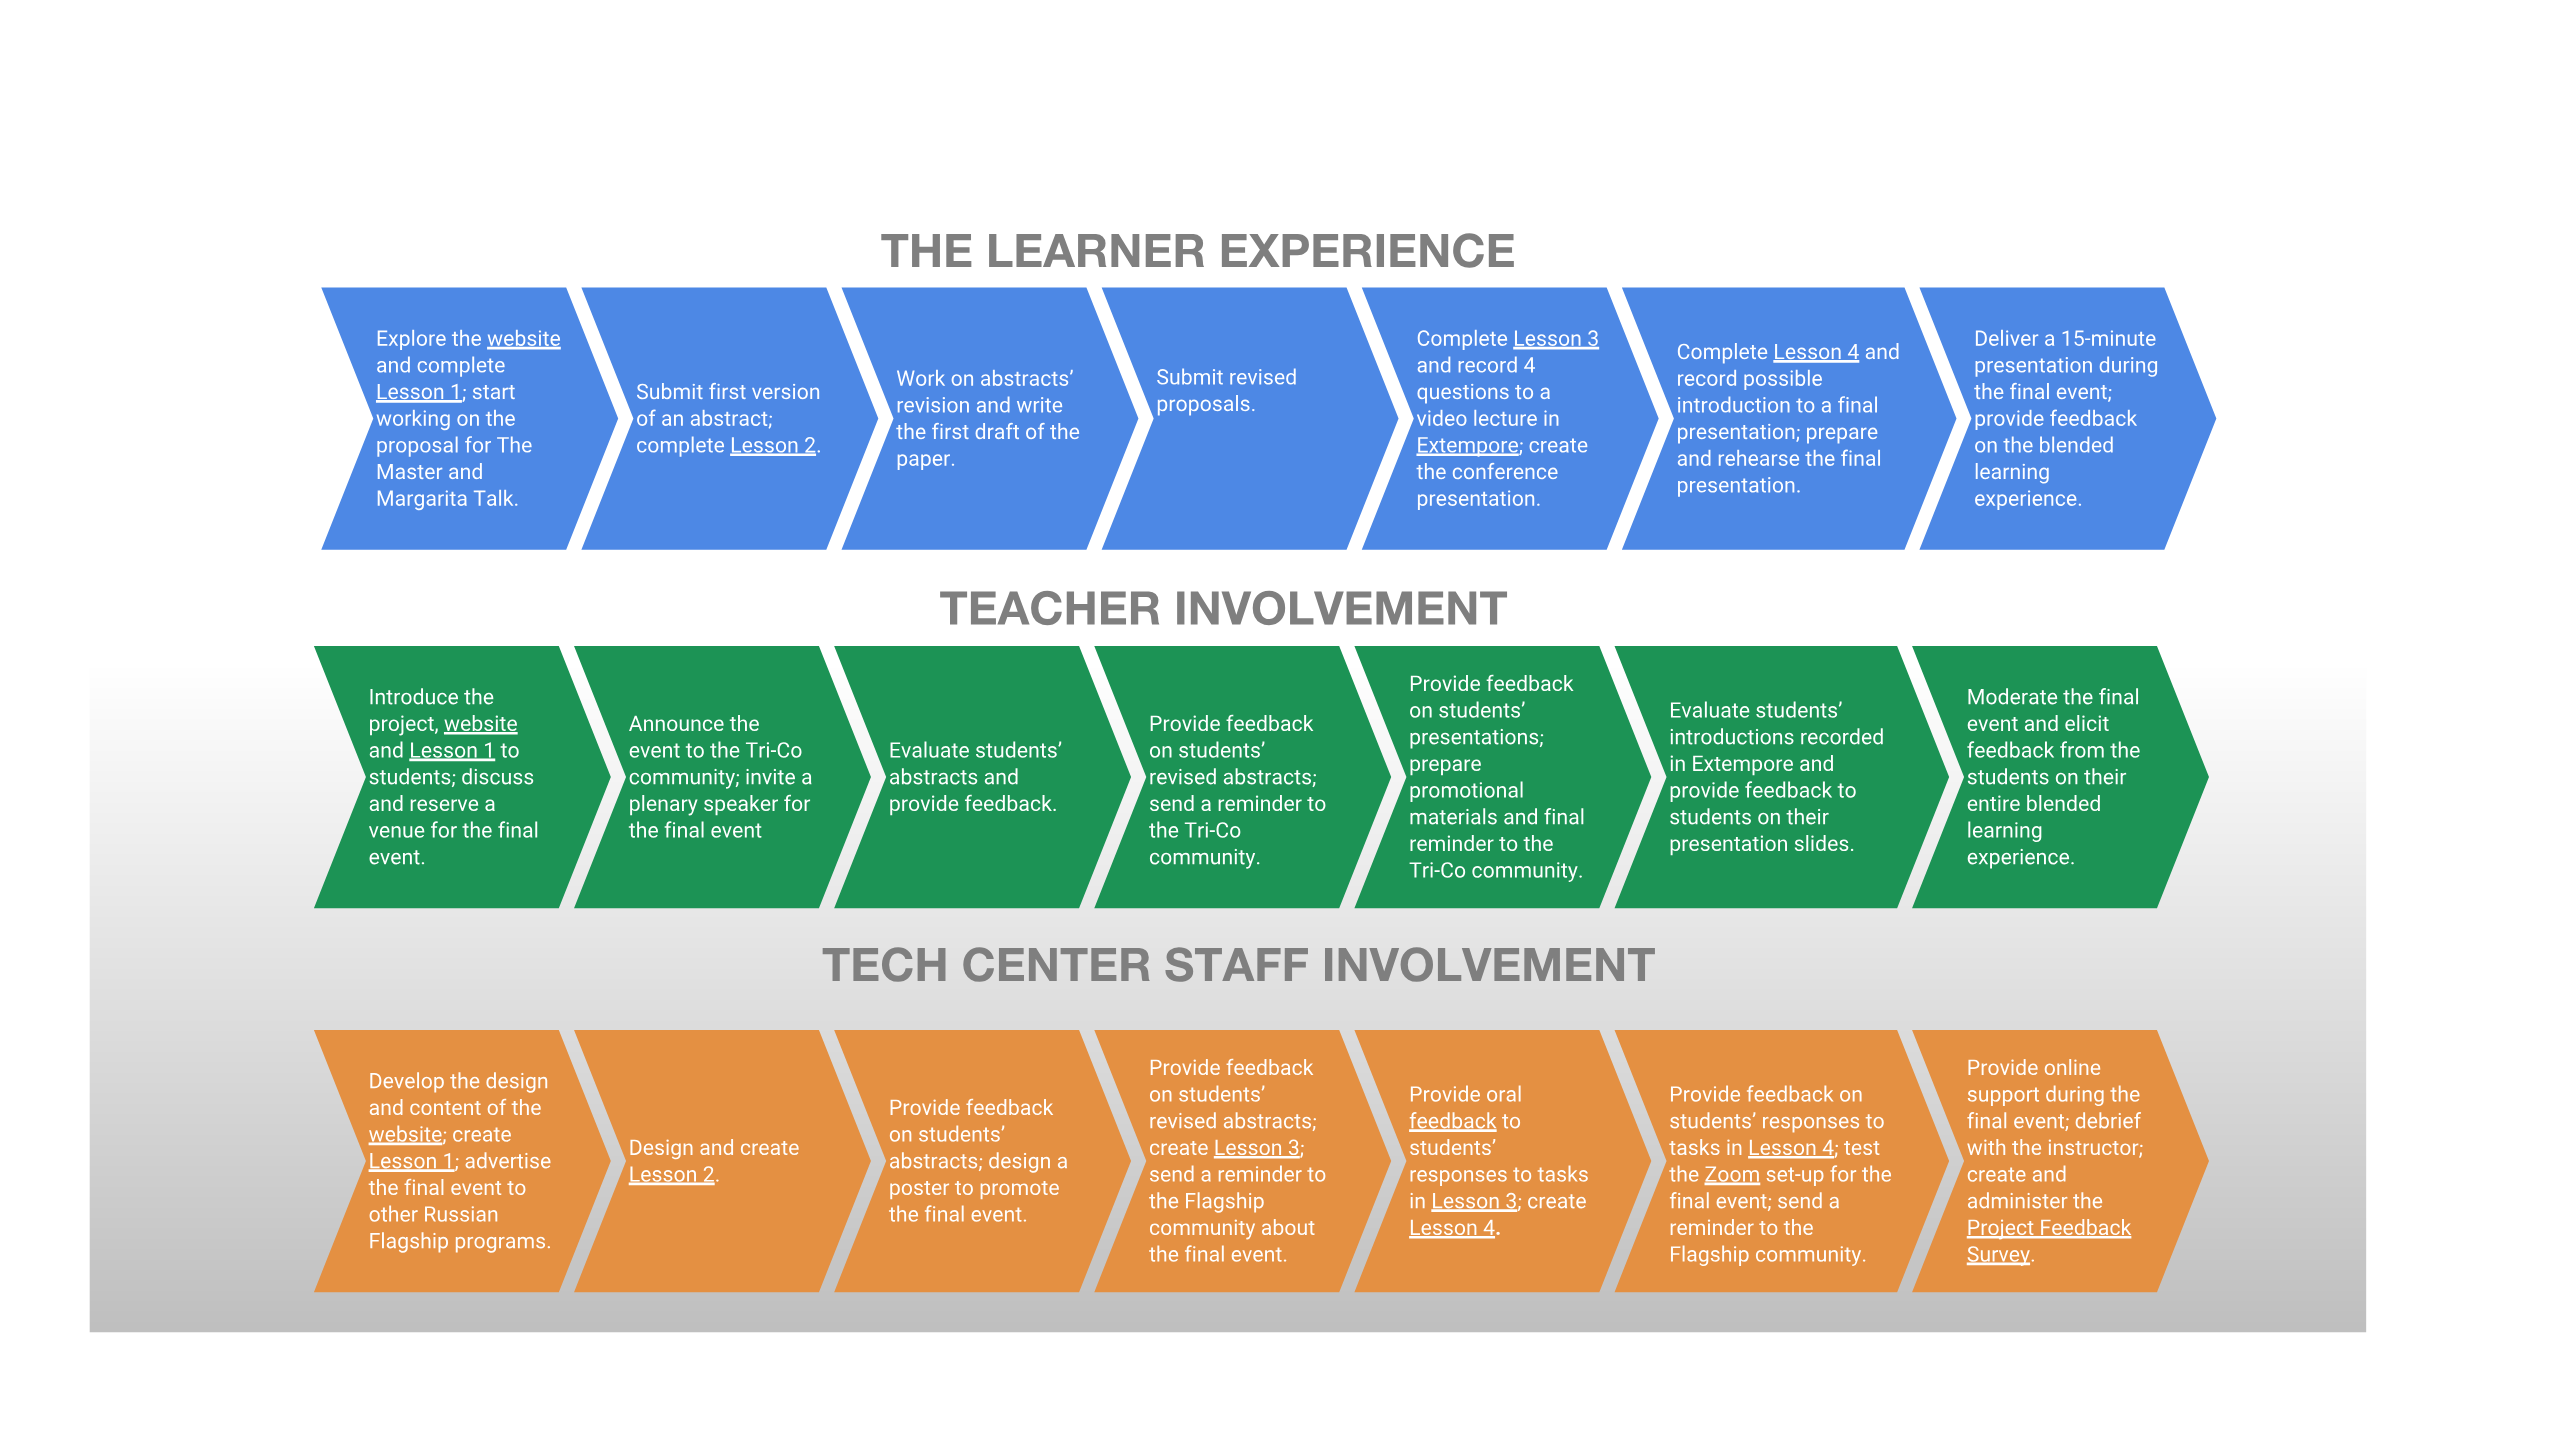 This flowchart demonstrates different steps that learners had to go through, the role and involvement of the teacher and the tech center staff during The Master and Margarita Talk project.